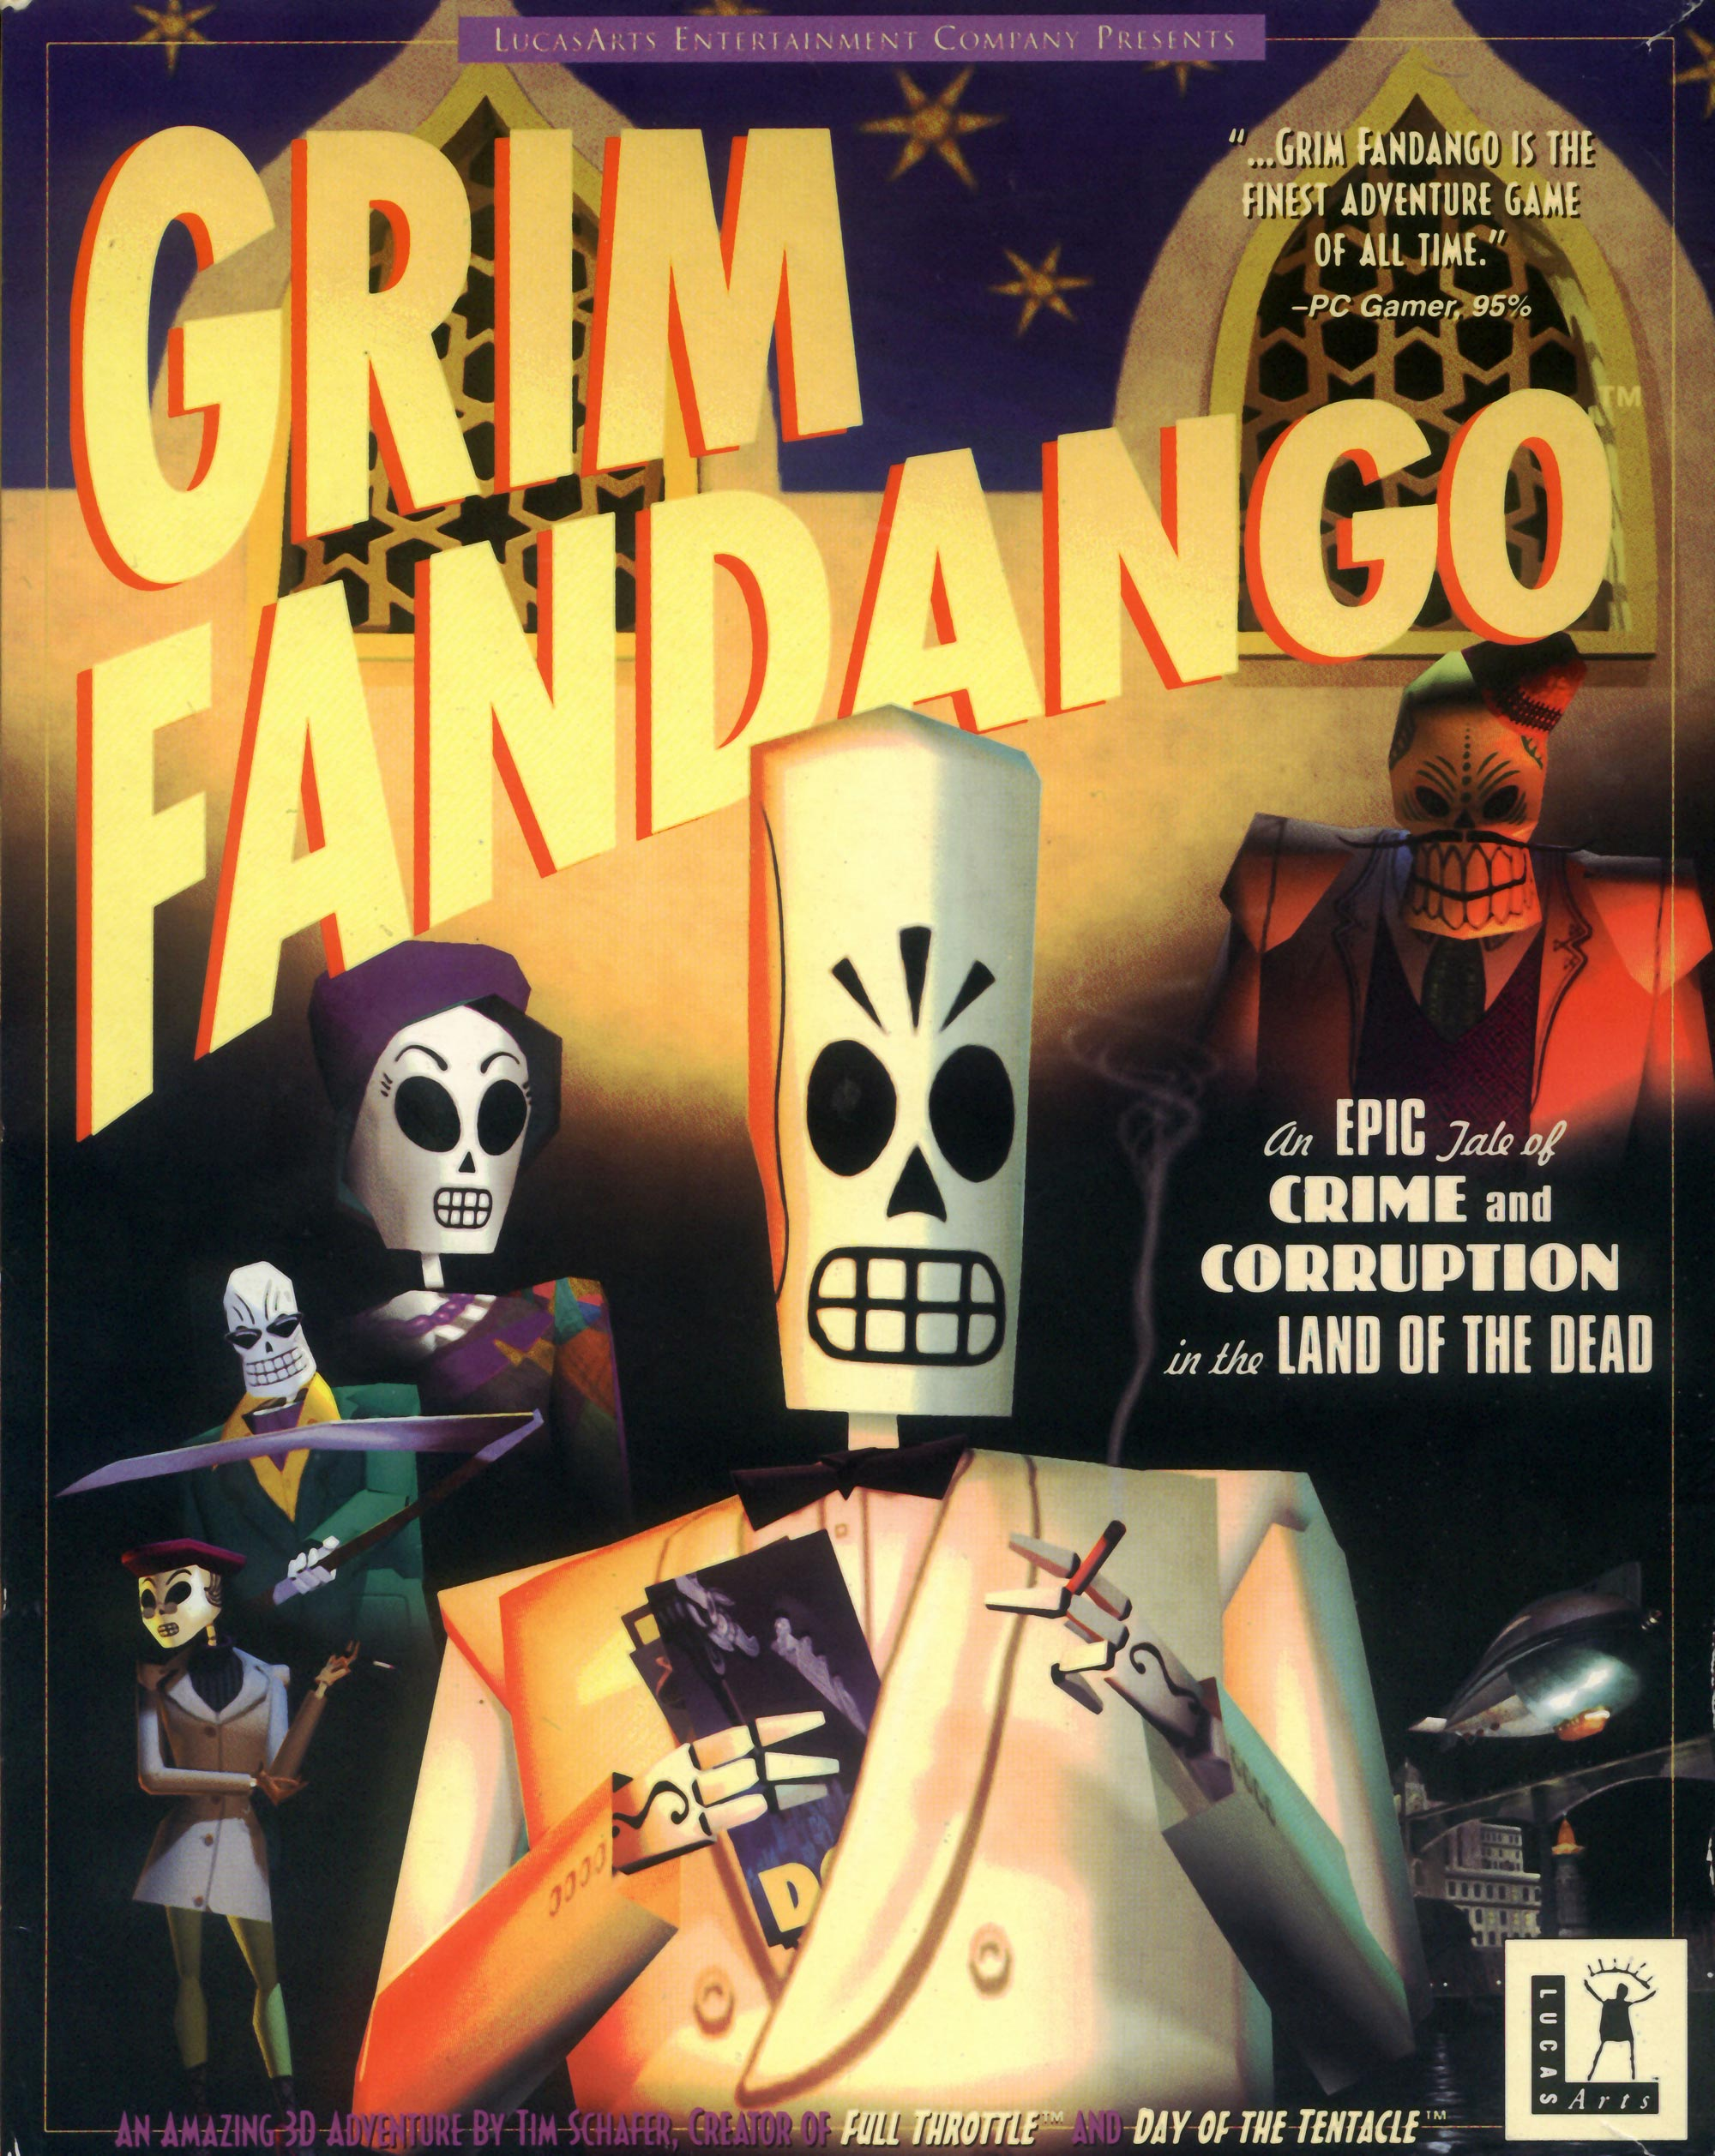 1422569748-grim-fandango-box-cover-art